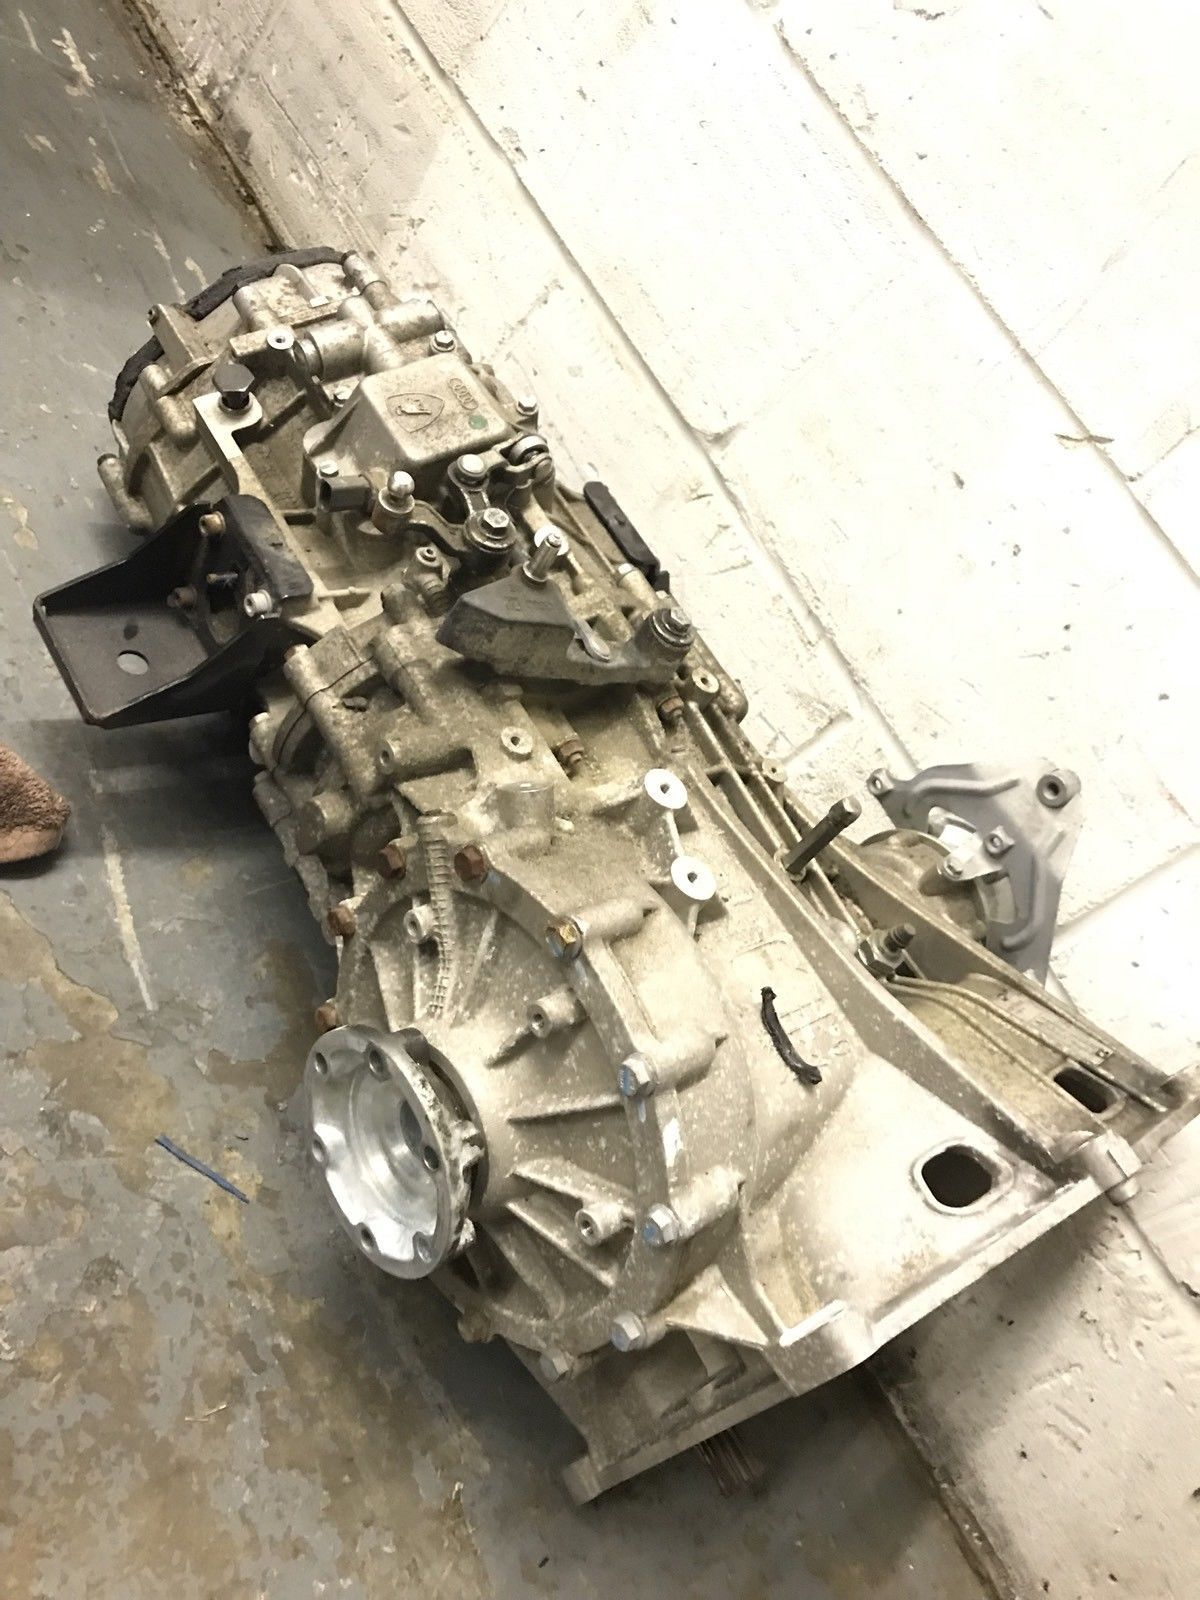 Audi R8 Gearbox 2011 V8 V10 8 000 Miles Used Complete Fully Functioning Ebay Audi R8 Audi Function